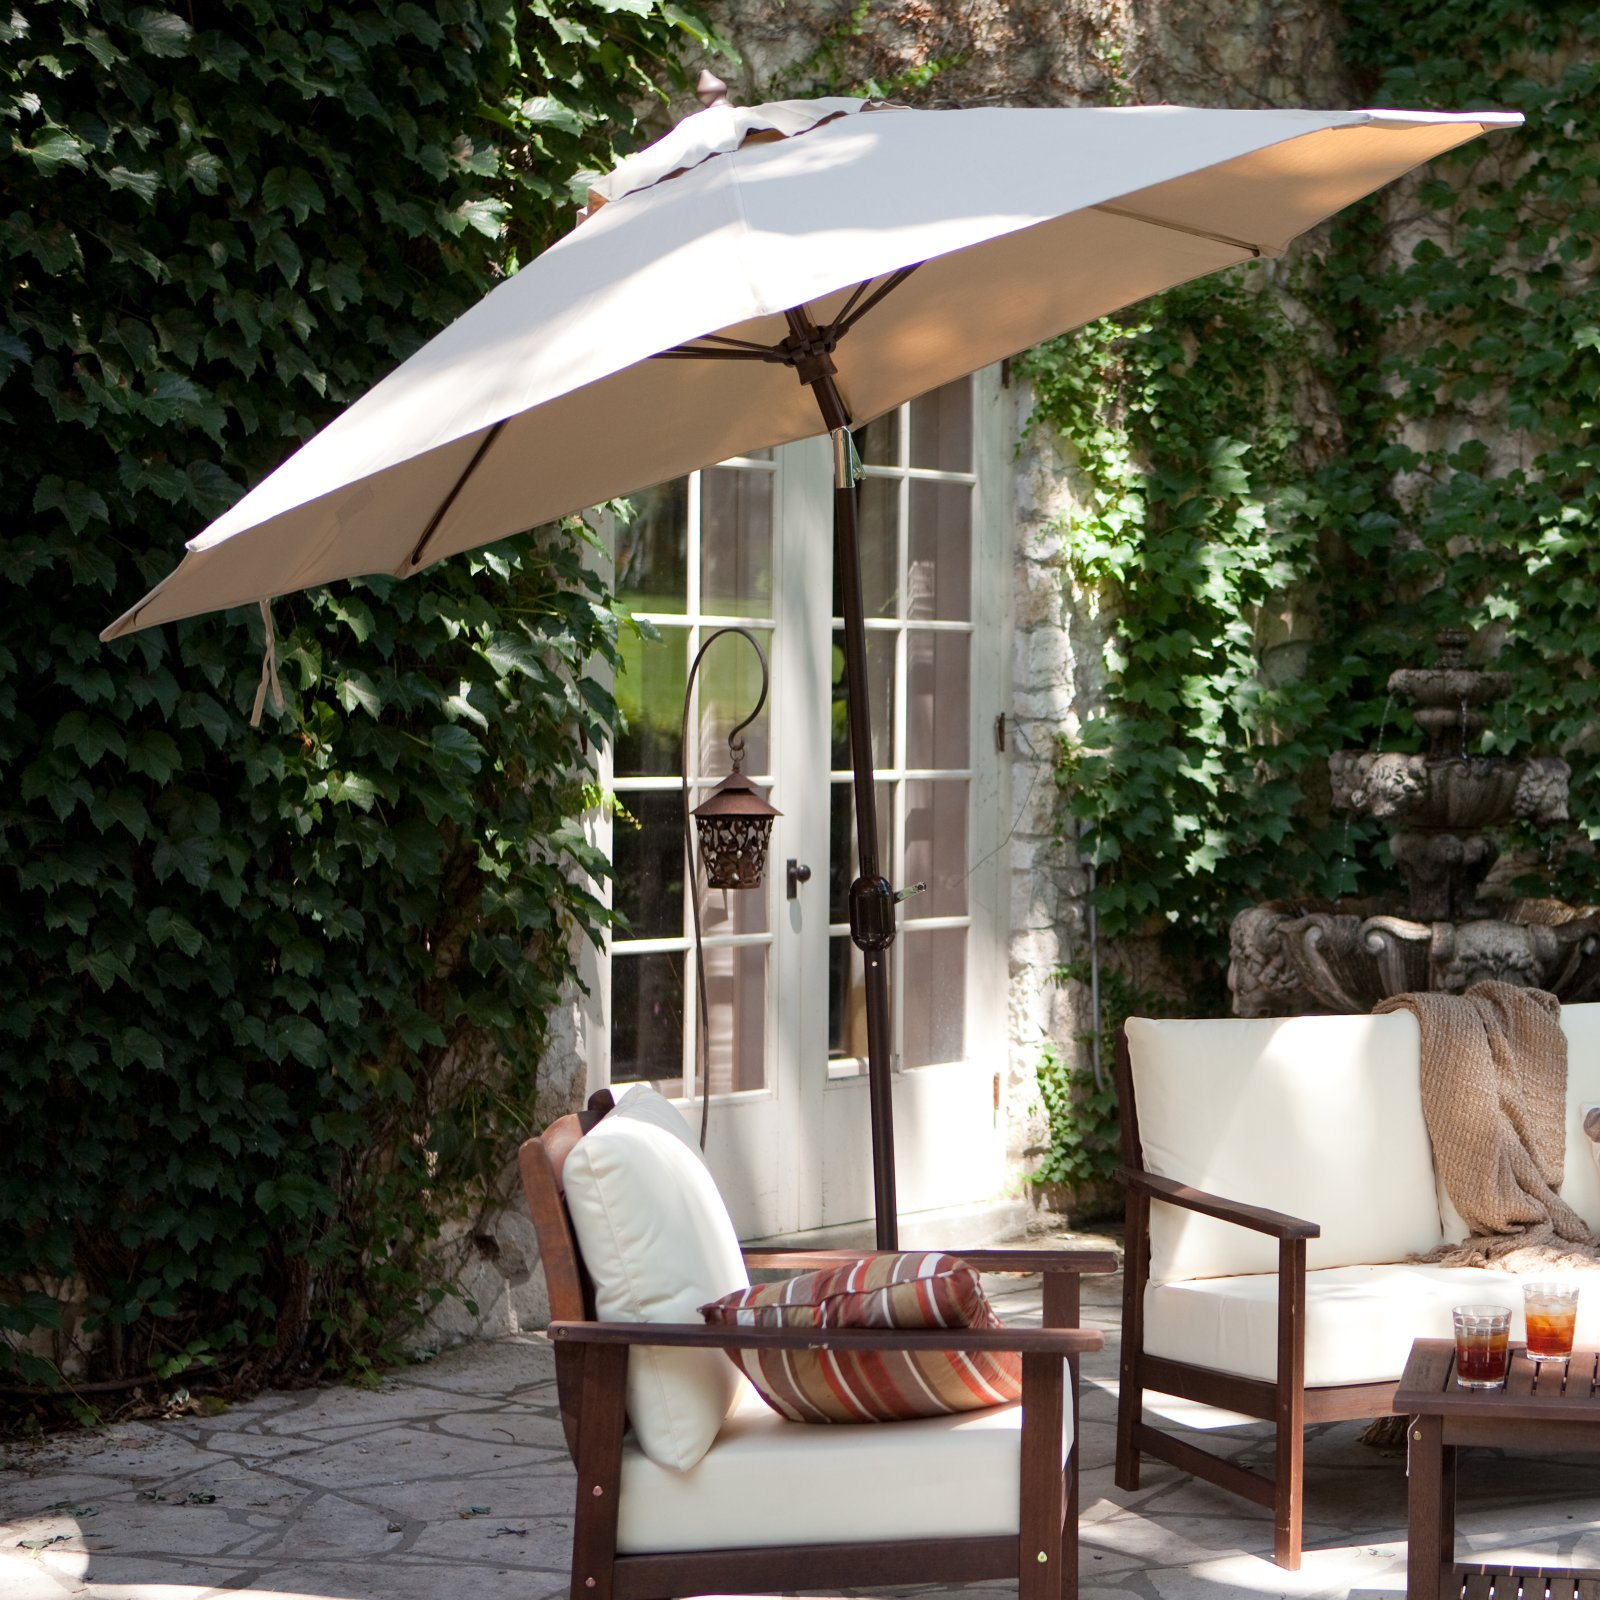 Attractive Deluxe Patio Umbrella Wtih Crank U0026 Tilt   Choose Color At Checkout!   THAT  Daily Deal